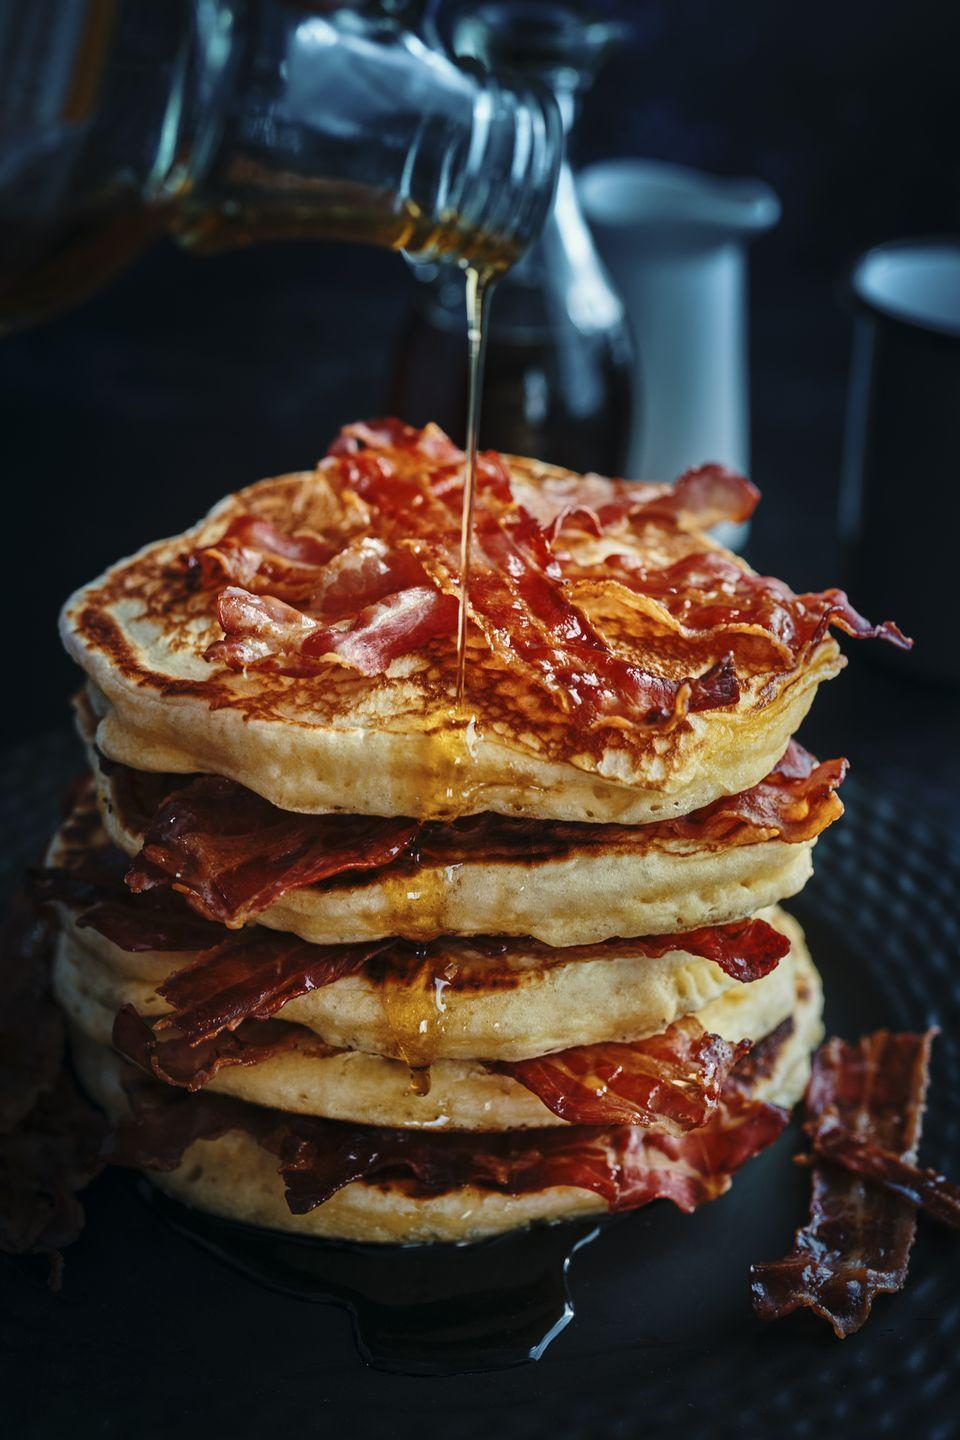 <p>Make your delicious and lovingly-made pancakes into a meal. Serve them with baked beans, a fried egg, some bacon or a roasted portobello mushroom. </p>